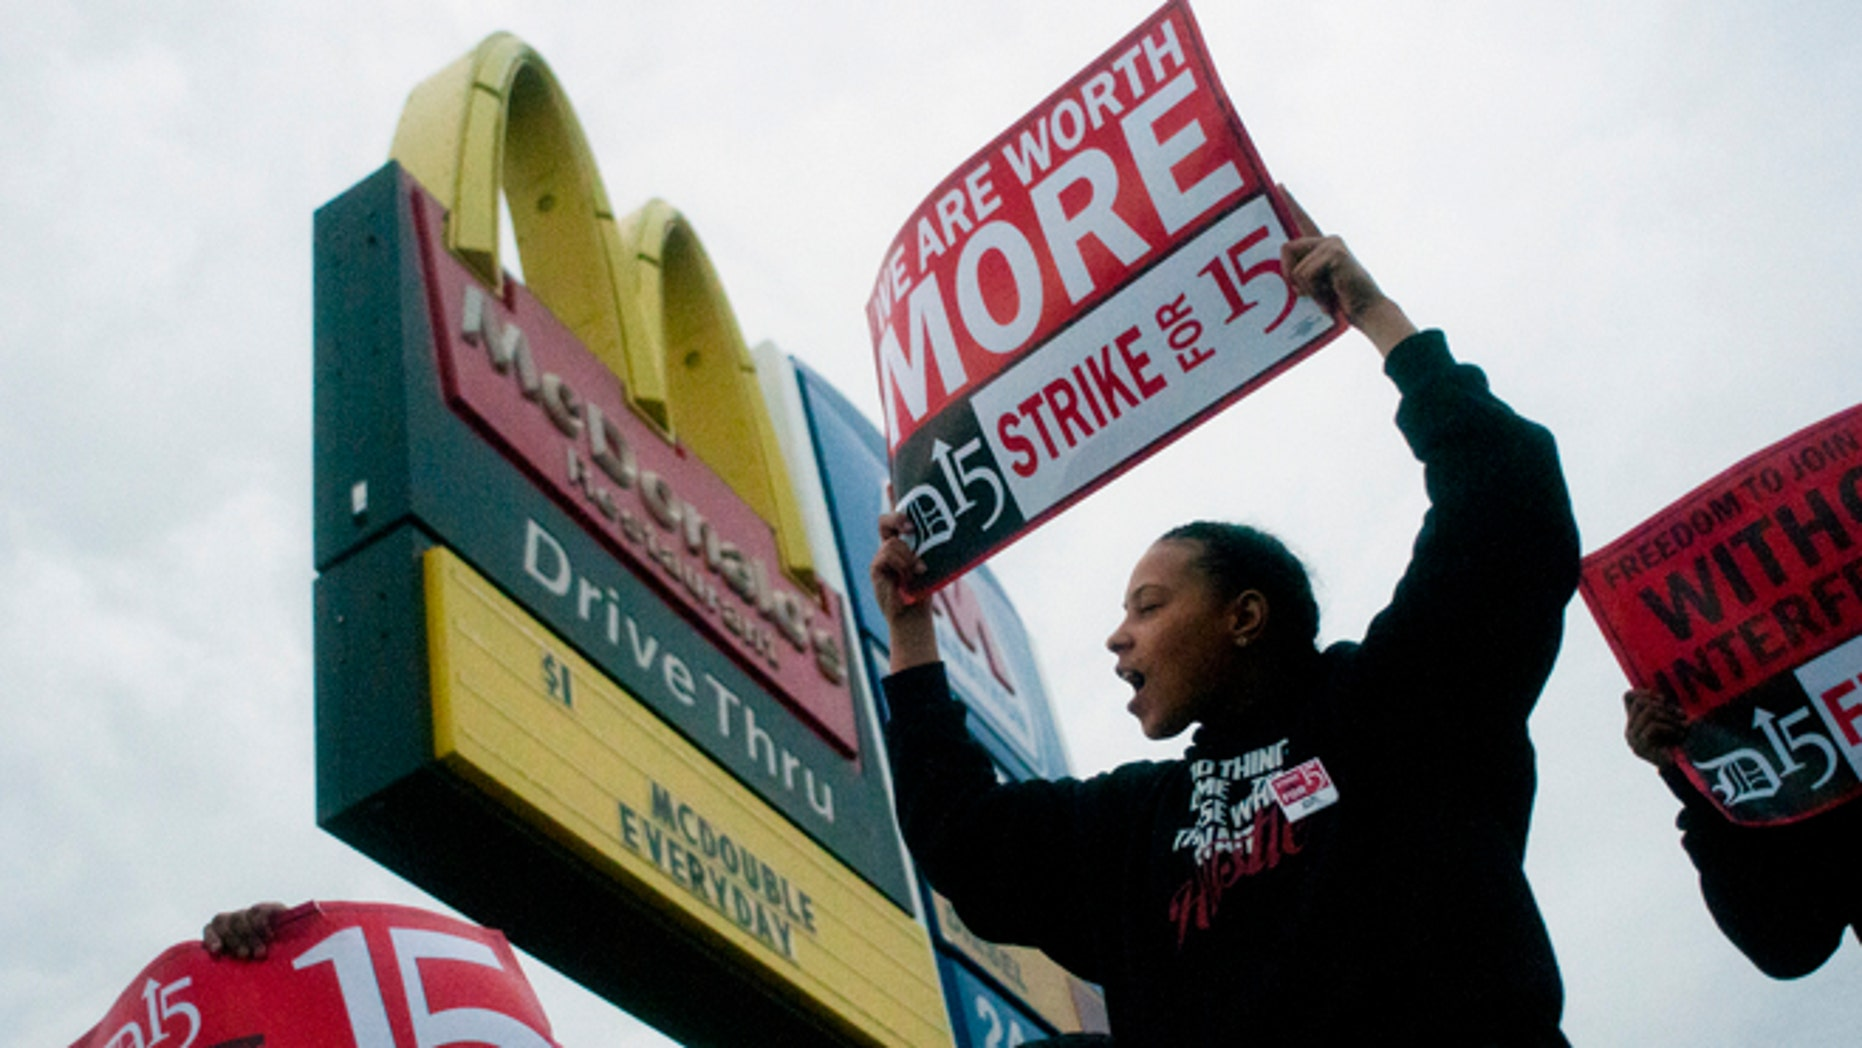 """Fast-food worker Michelle Osborn, 23, of Flint shouts out chants as she and a few dozen others strike outside of McDonald's on Wednesday, July 31, 2013 in Flint.  Some fast food restaurant workers have walked off the job in the Detroit area as part of an effort to push for higher wages. Organizers say they began the walkout at restaurants in Lincoln Park and Southfield on Tuesday night. Workers in Flint hit the street Wednesday outside a McDonald's, saying they want wages """"super-sized."""" Workers want $15 and hour, better working conditions and the right to unionize. The restaurant industry says higher wages would hurt job creation. The actions follow strikes this week in other parts of the country. (AP Photo/The Flint Journal, Jake May) LOCAL TV OUT; LOCAL INTERNET OUT"""